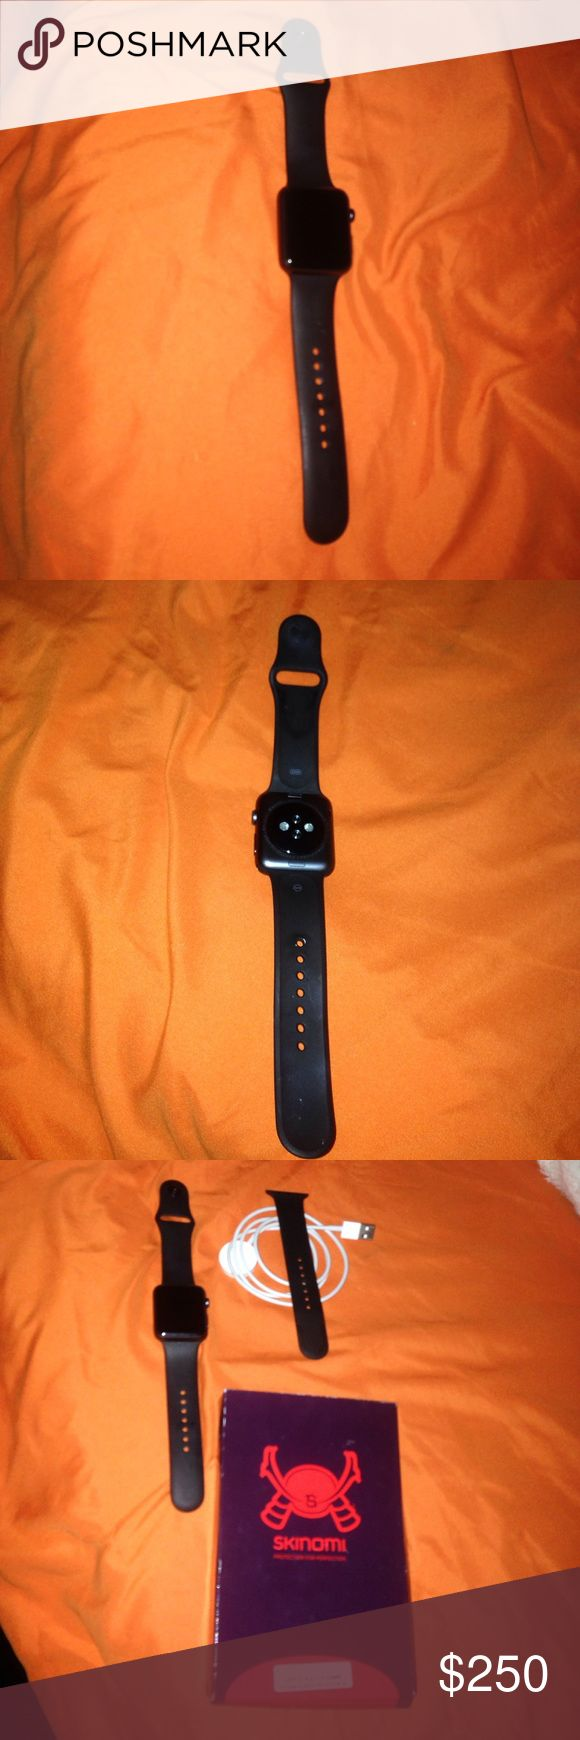 42 mm space gray series 1 Apple Watch In great condition. No scratches. No signs of wear. It comes with small and large sports band and charger. Original box is included. I bought it brand new and only wore it a handful of times. It also comes with screen protectors. I'm willing to sell at a reasonable price apple Accessories Watches